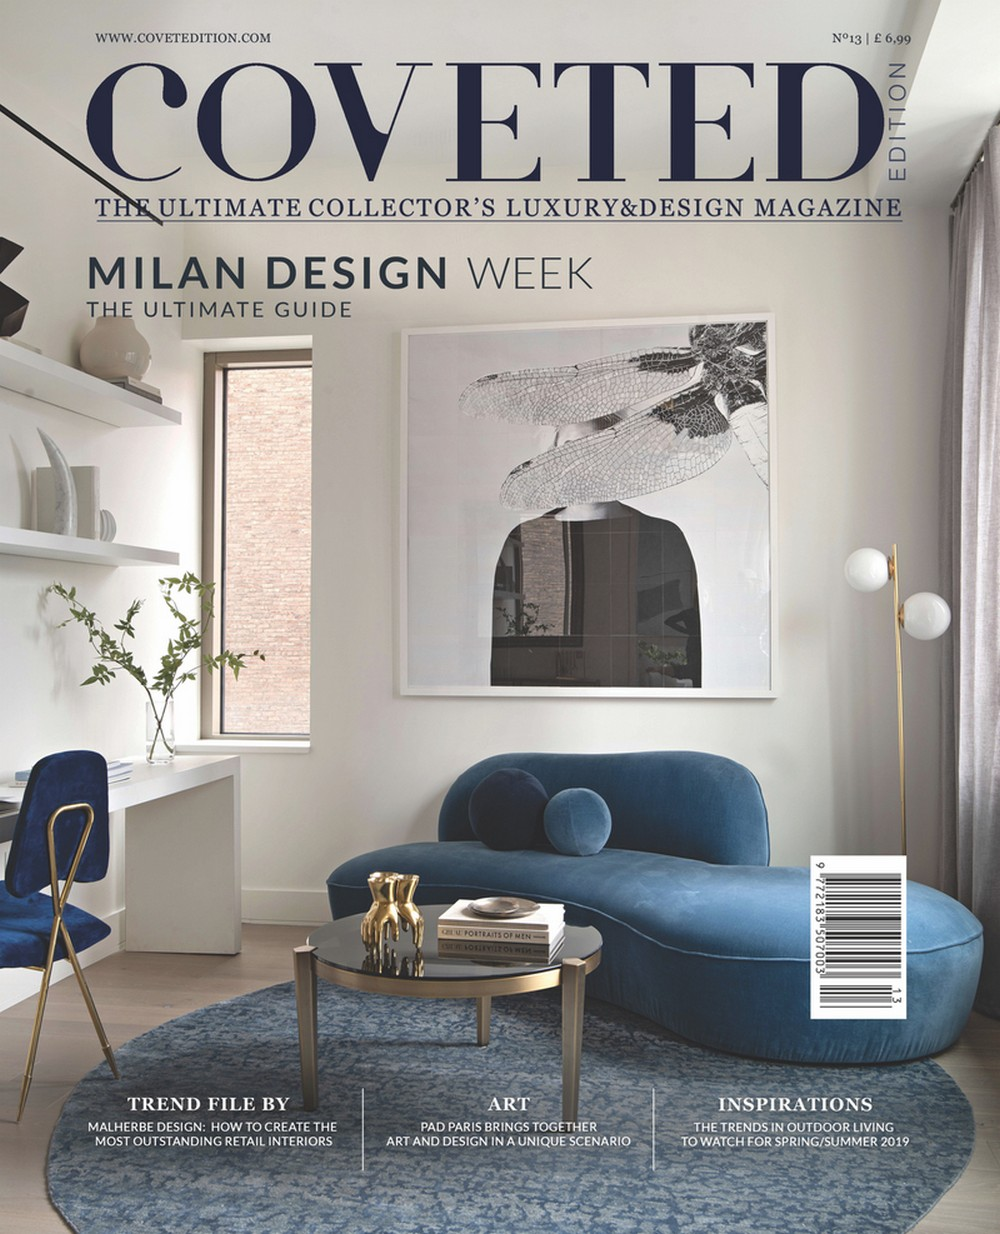 Discover the Best Interior Design Magazines To Follow On Pinterest interior design magazines Discover the Best Interior Design Magazines To Follow On Pinterest Discover the Best Interior Design Magazines To Follow On Pinterest 3